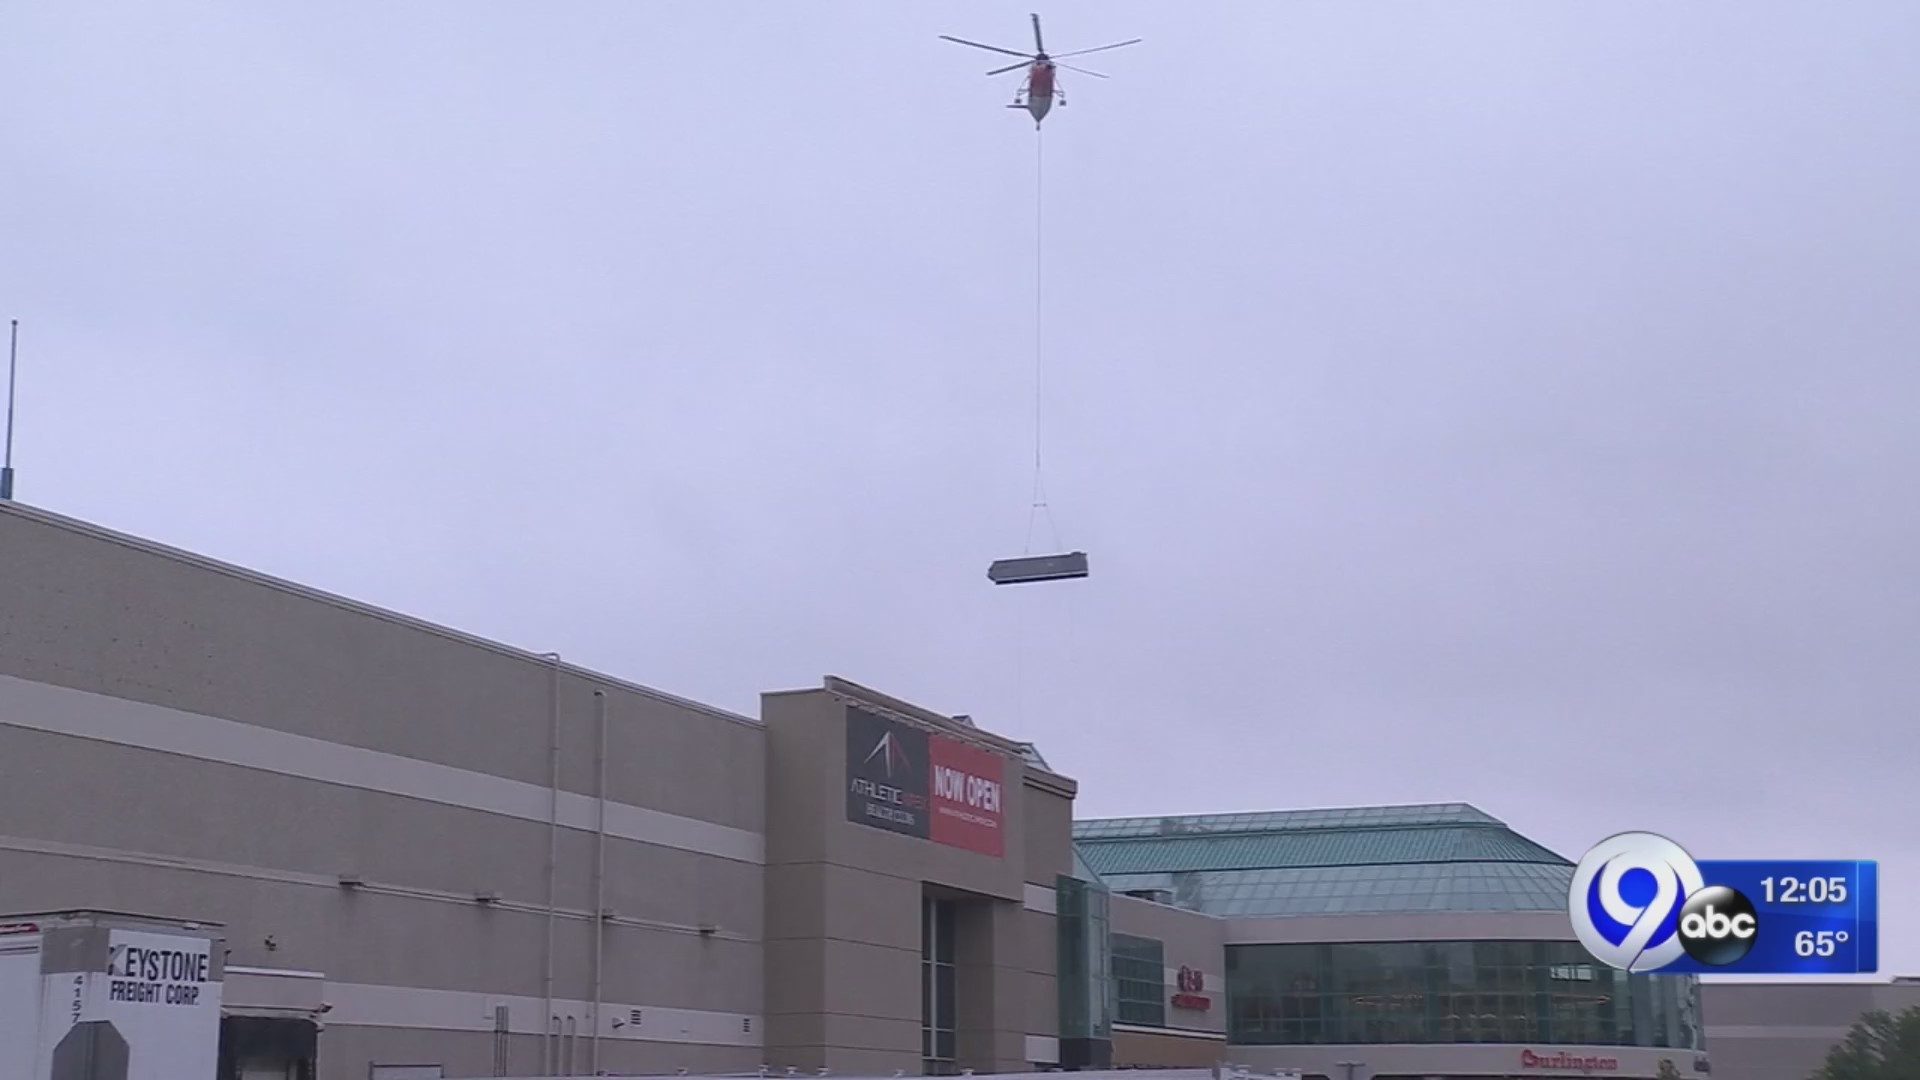 Helicopter delivers air conditioner to roof of Destiny USA